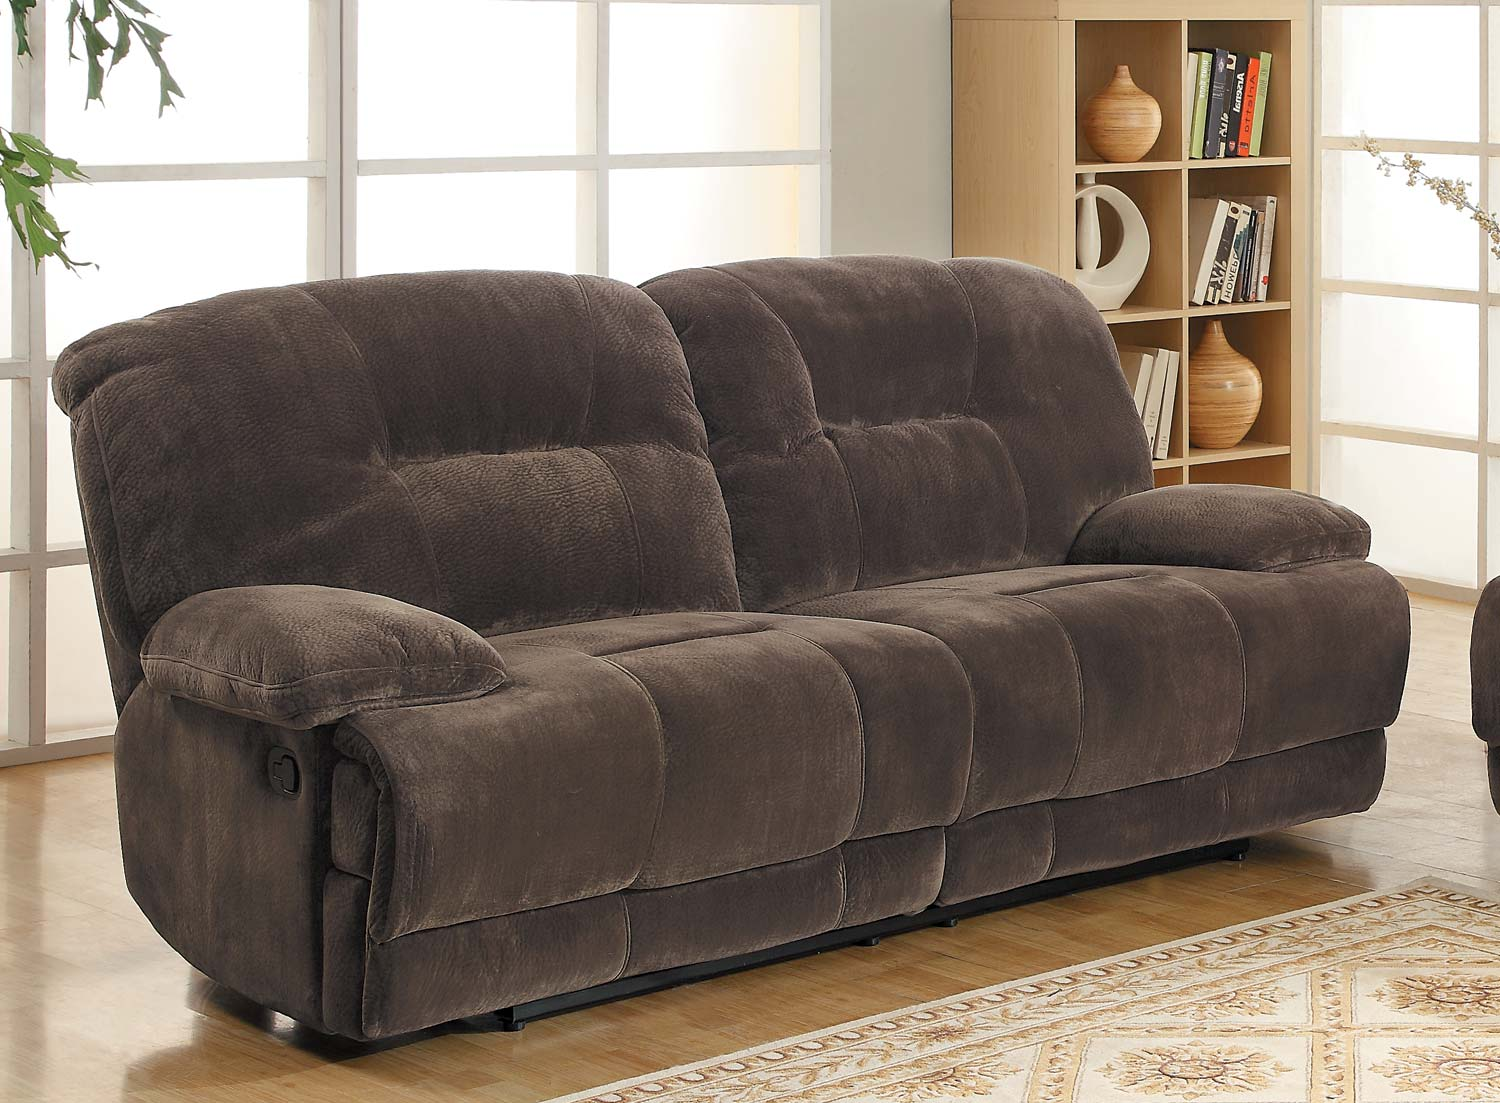 Homelegance Geoffrey Sofa Dual Recliner - Chocolate - Textured Plush Microfiber & Homelegance Geoffrey Sofa Dual Recliner - Chocolate - Textured ... islam-shia.org